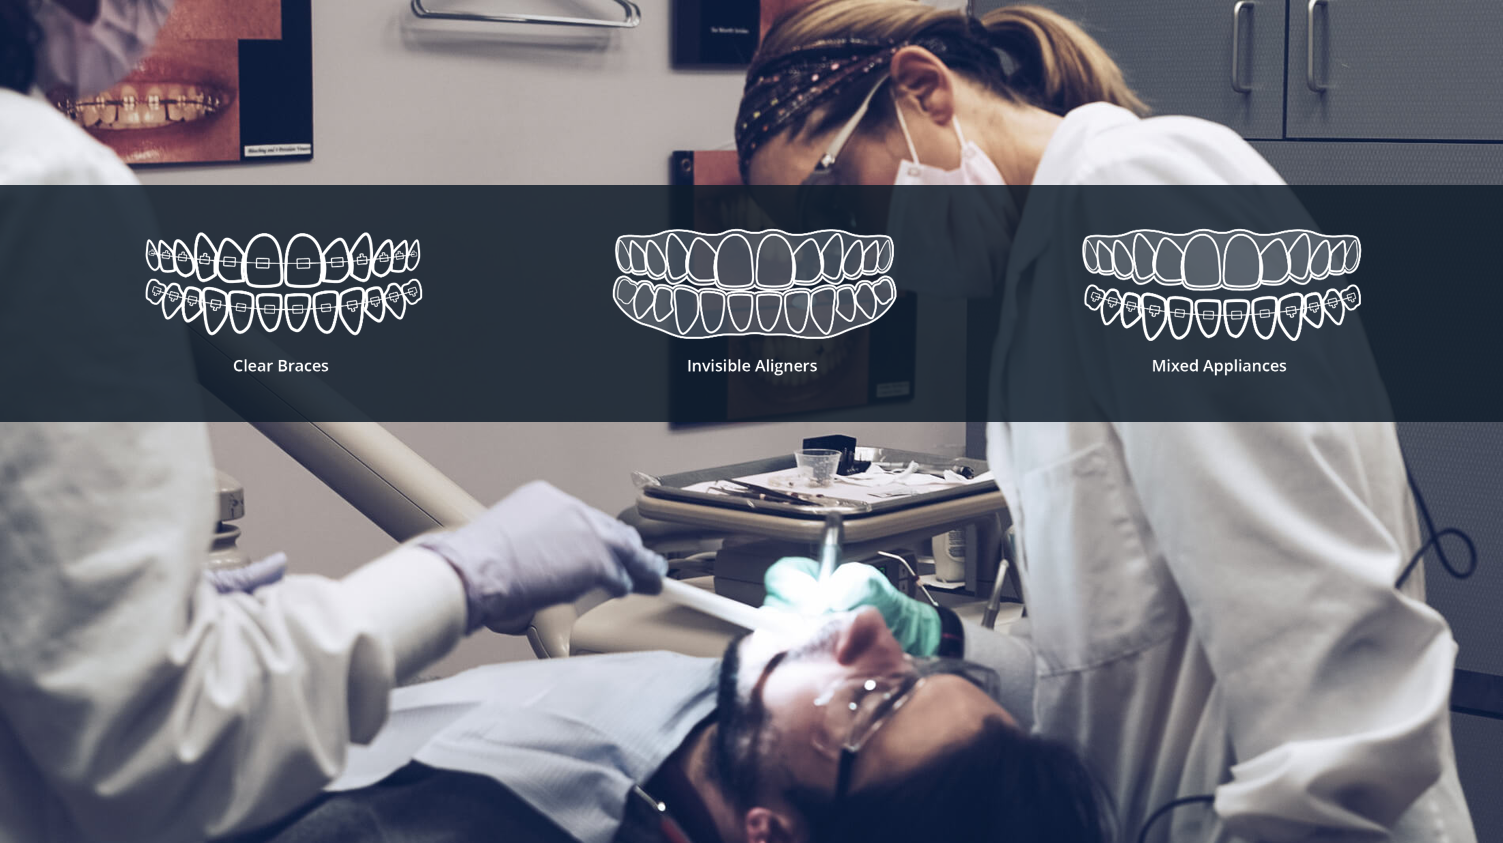 Aligner_Braces_Mixed